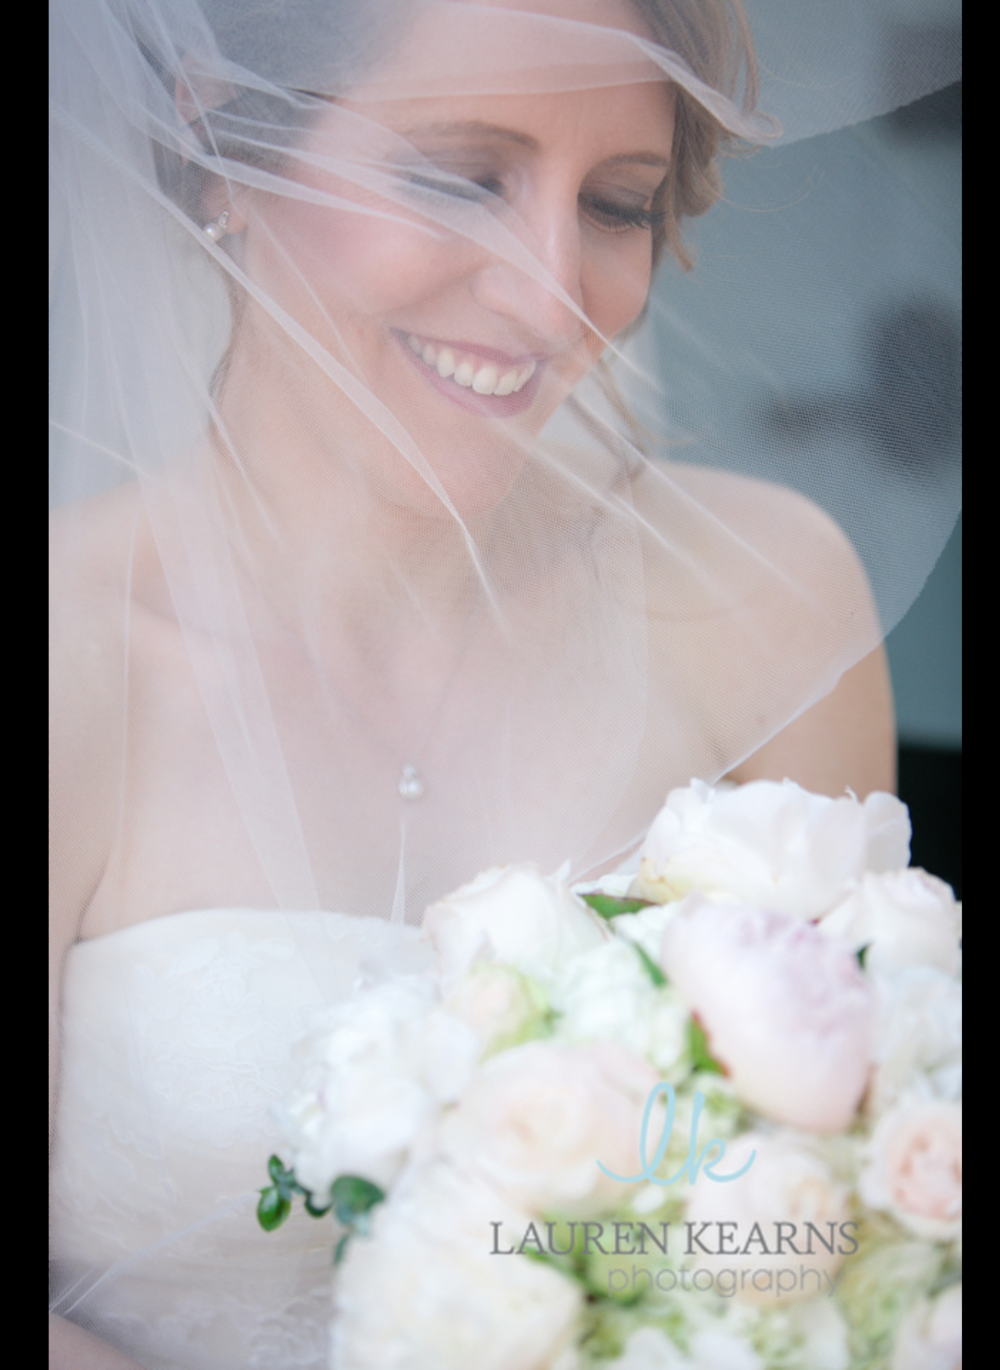 A veiled picture of the beautiful bride Kate